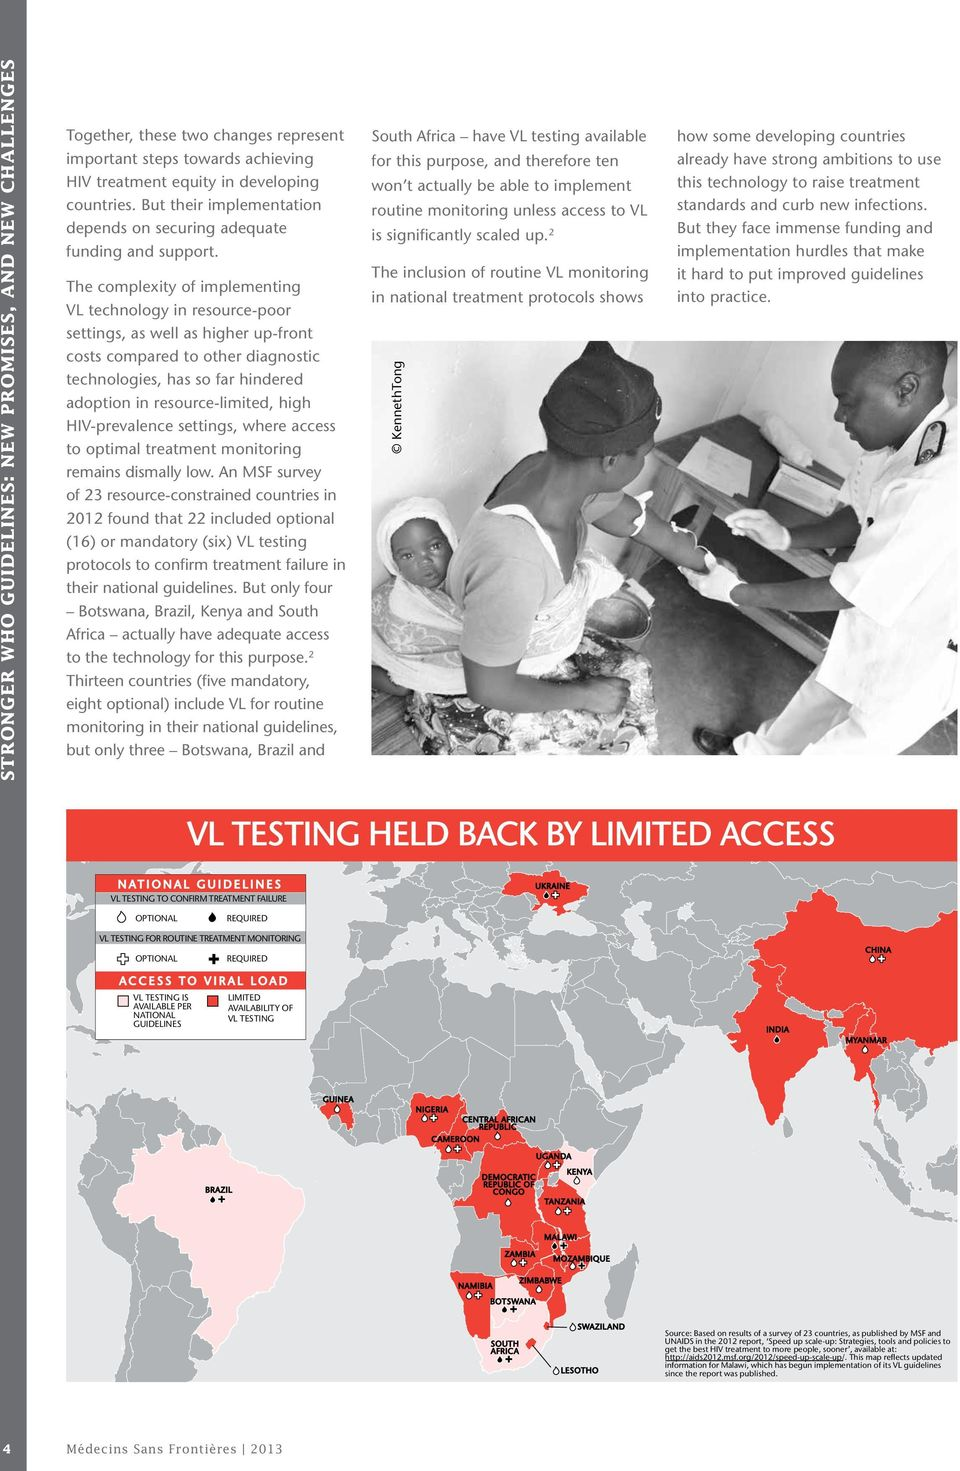 An MSF survey of 23 resource-constrained countries in 2012 found that 22 included optional (16) or mandatory (six) VL testing protocols to confirm treatment failure in their national guidelines.